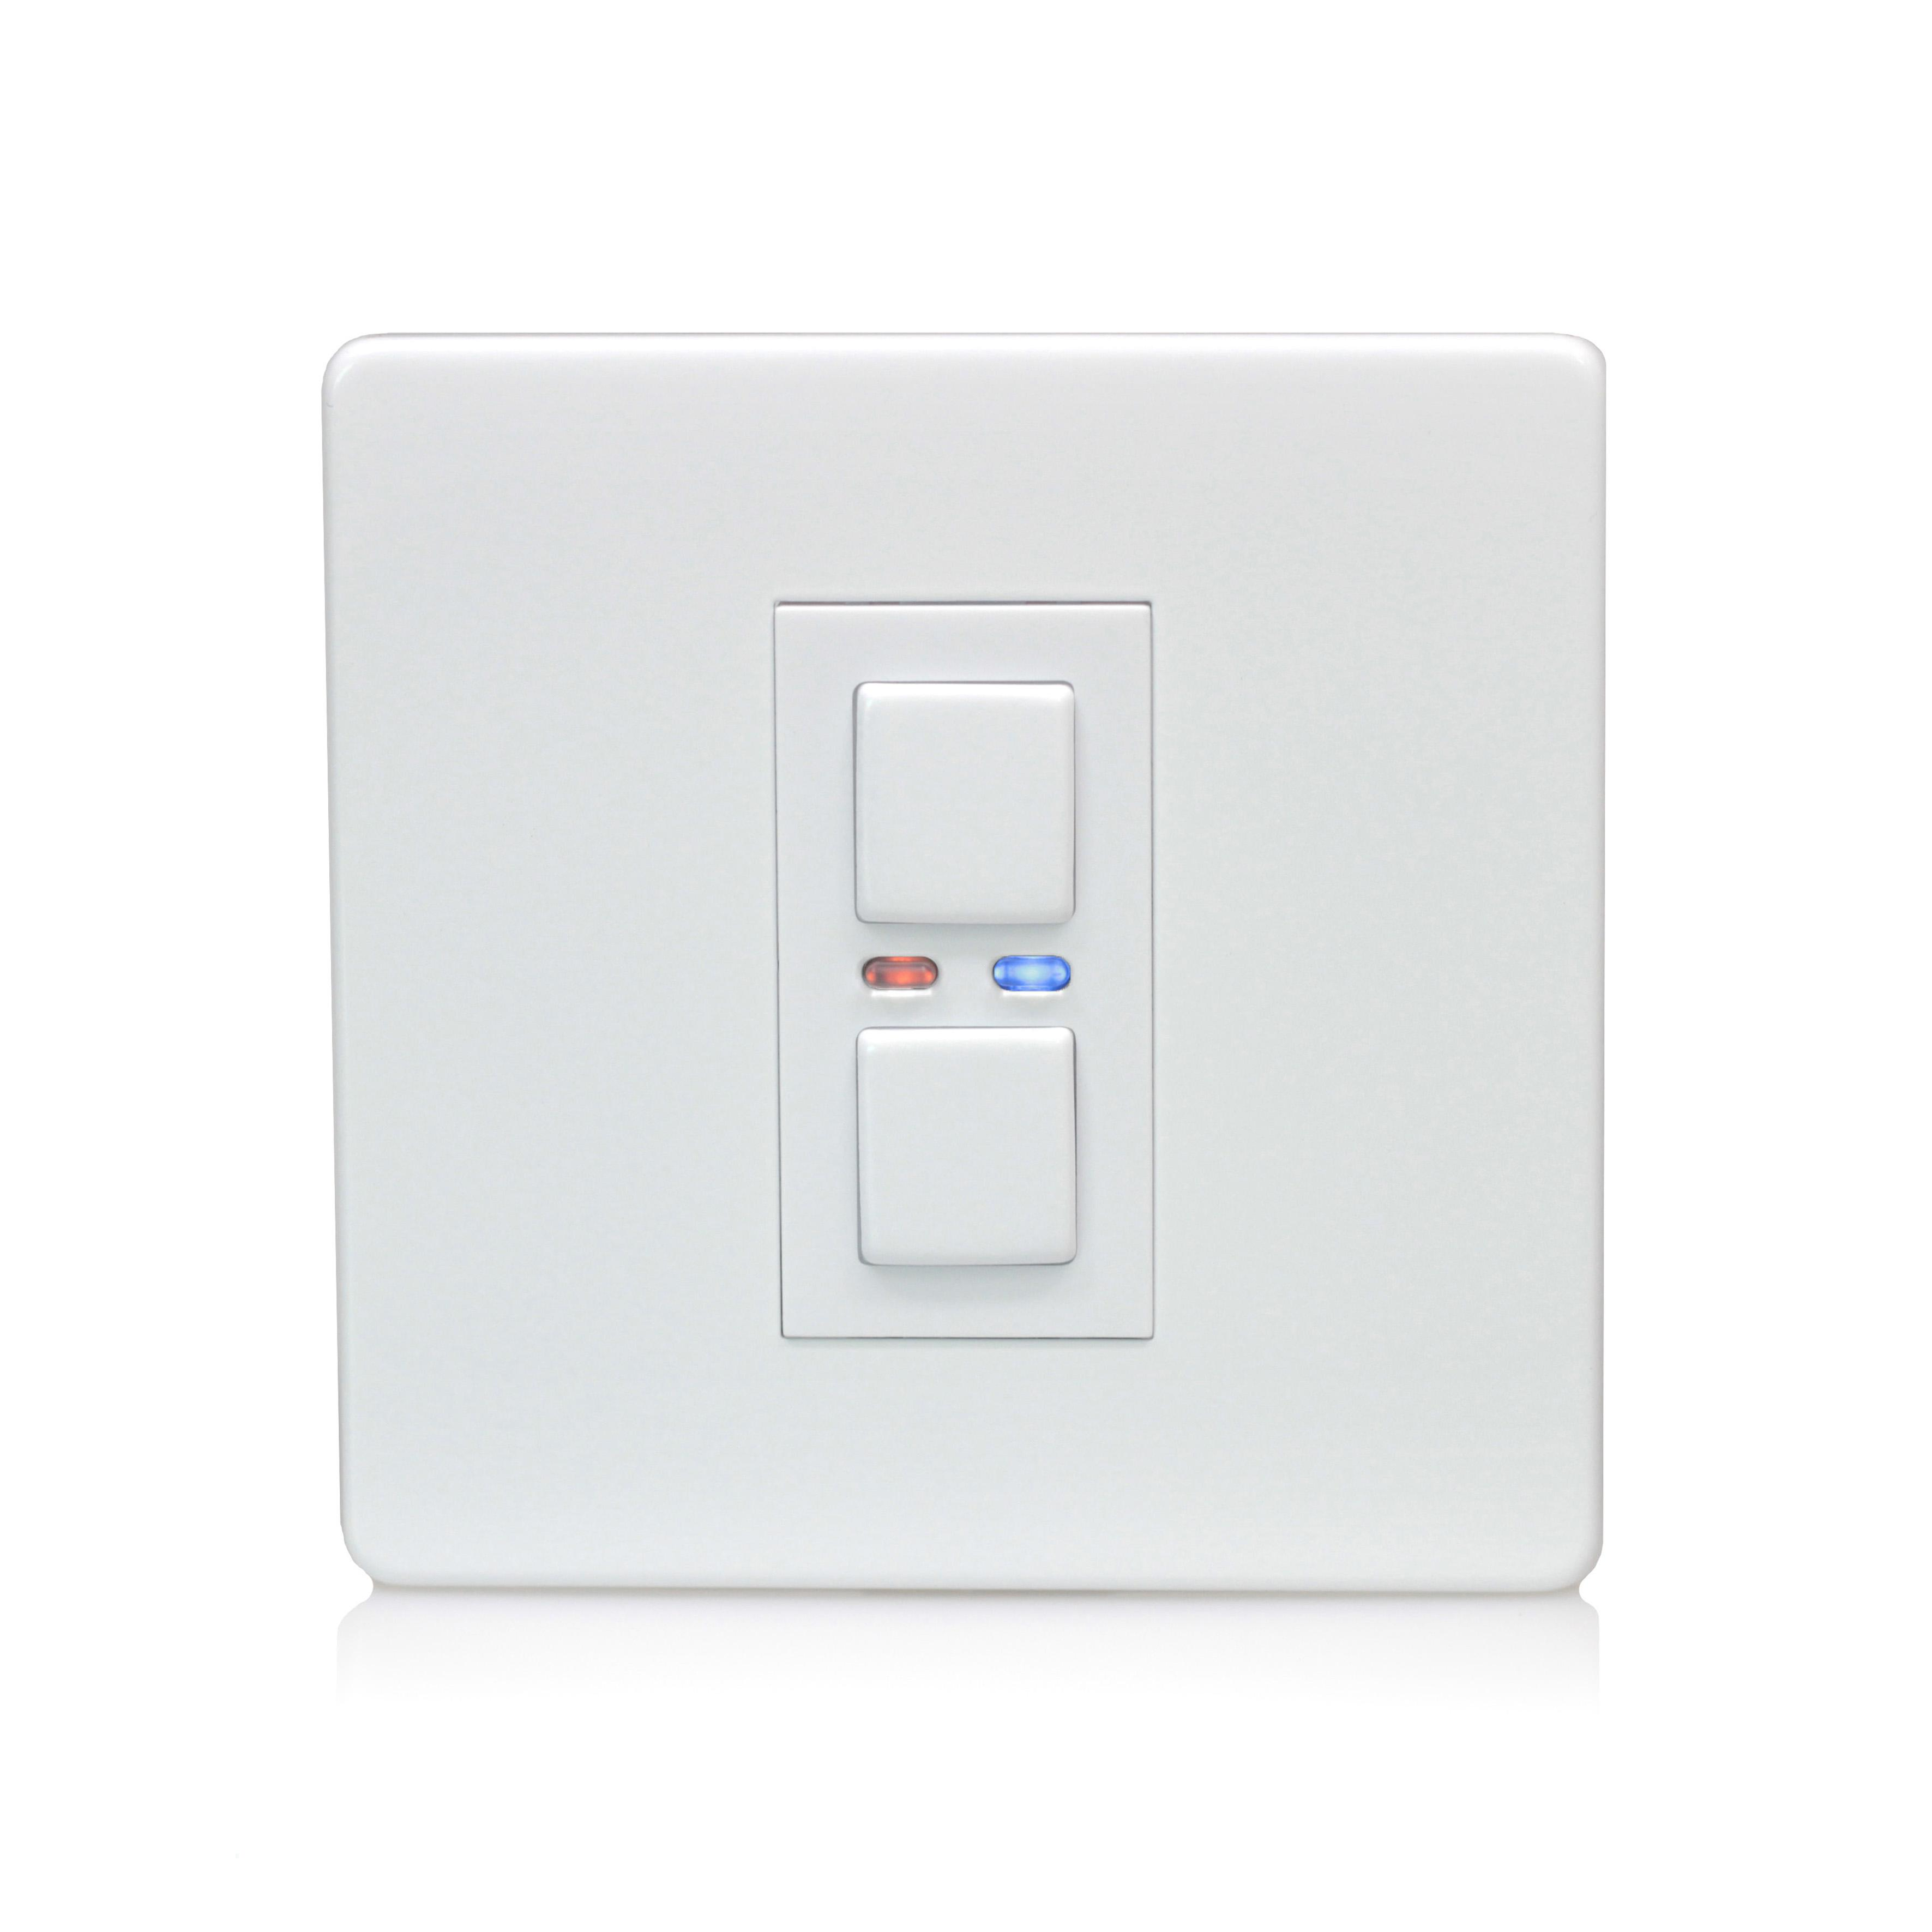 switch remote for rf wireless bulb wifi pin sonoff lampholder home smart control interruptor light